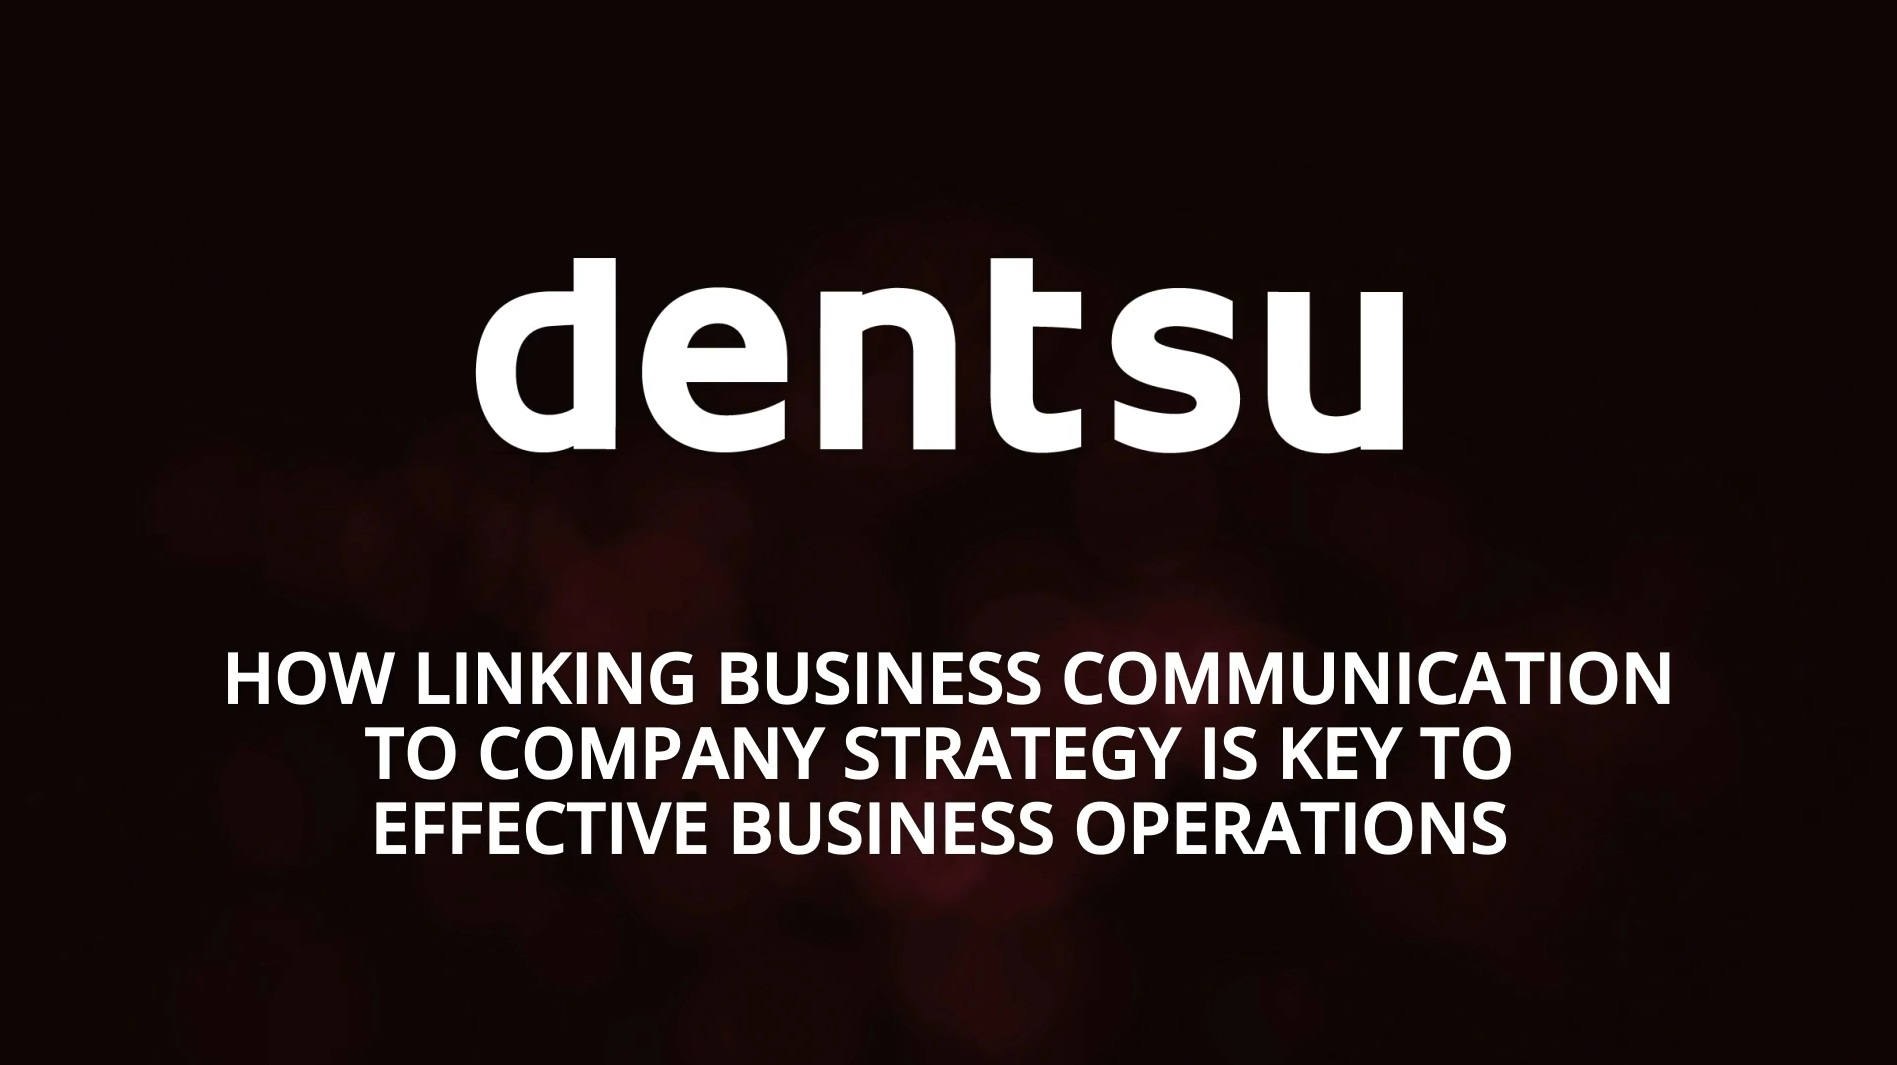 How linking business communication to company strategy is key to effective business operations